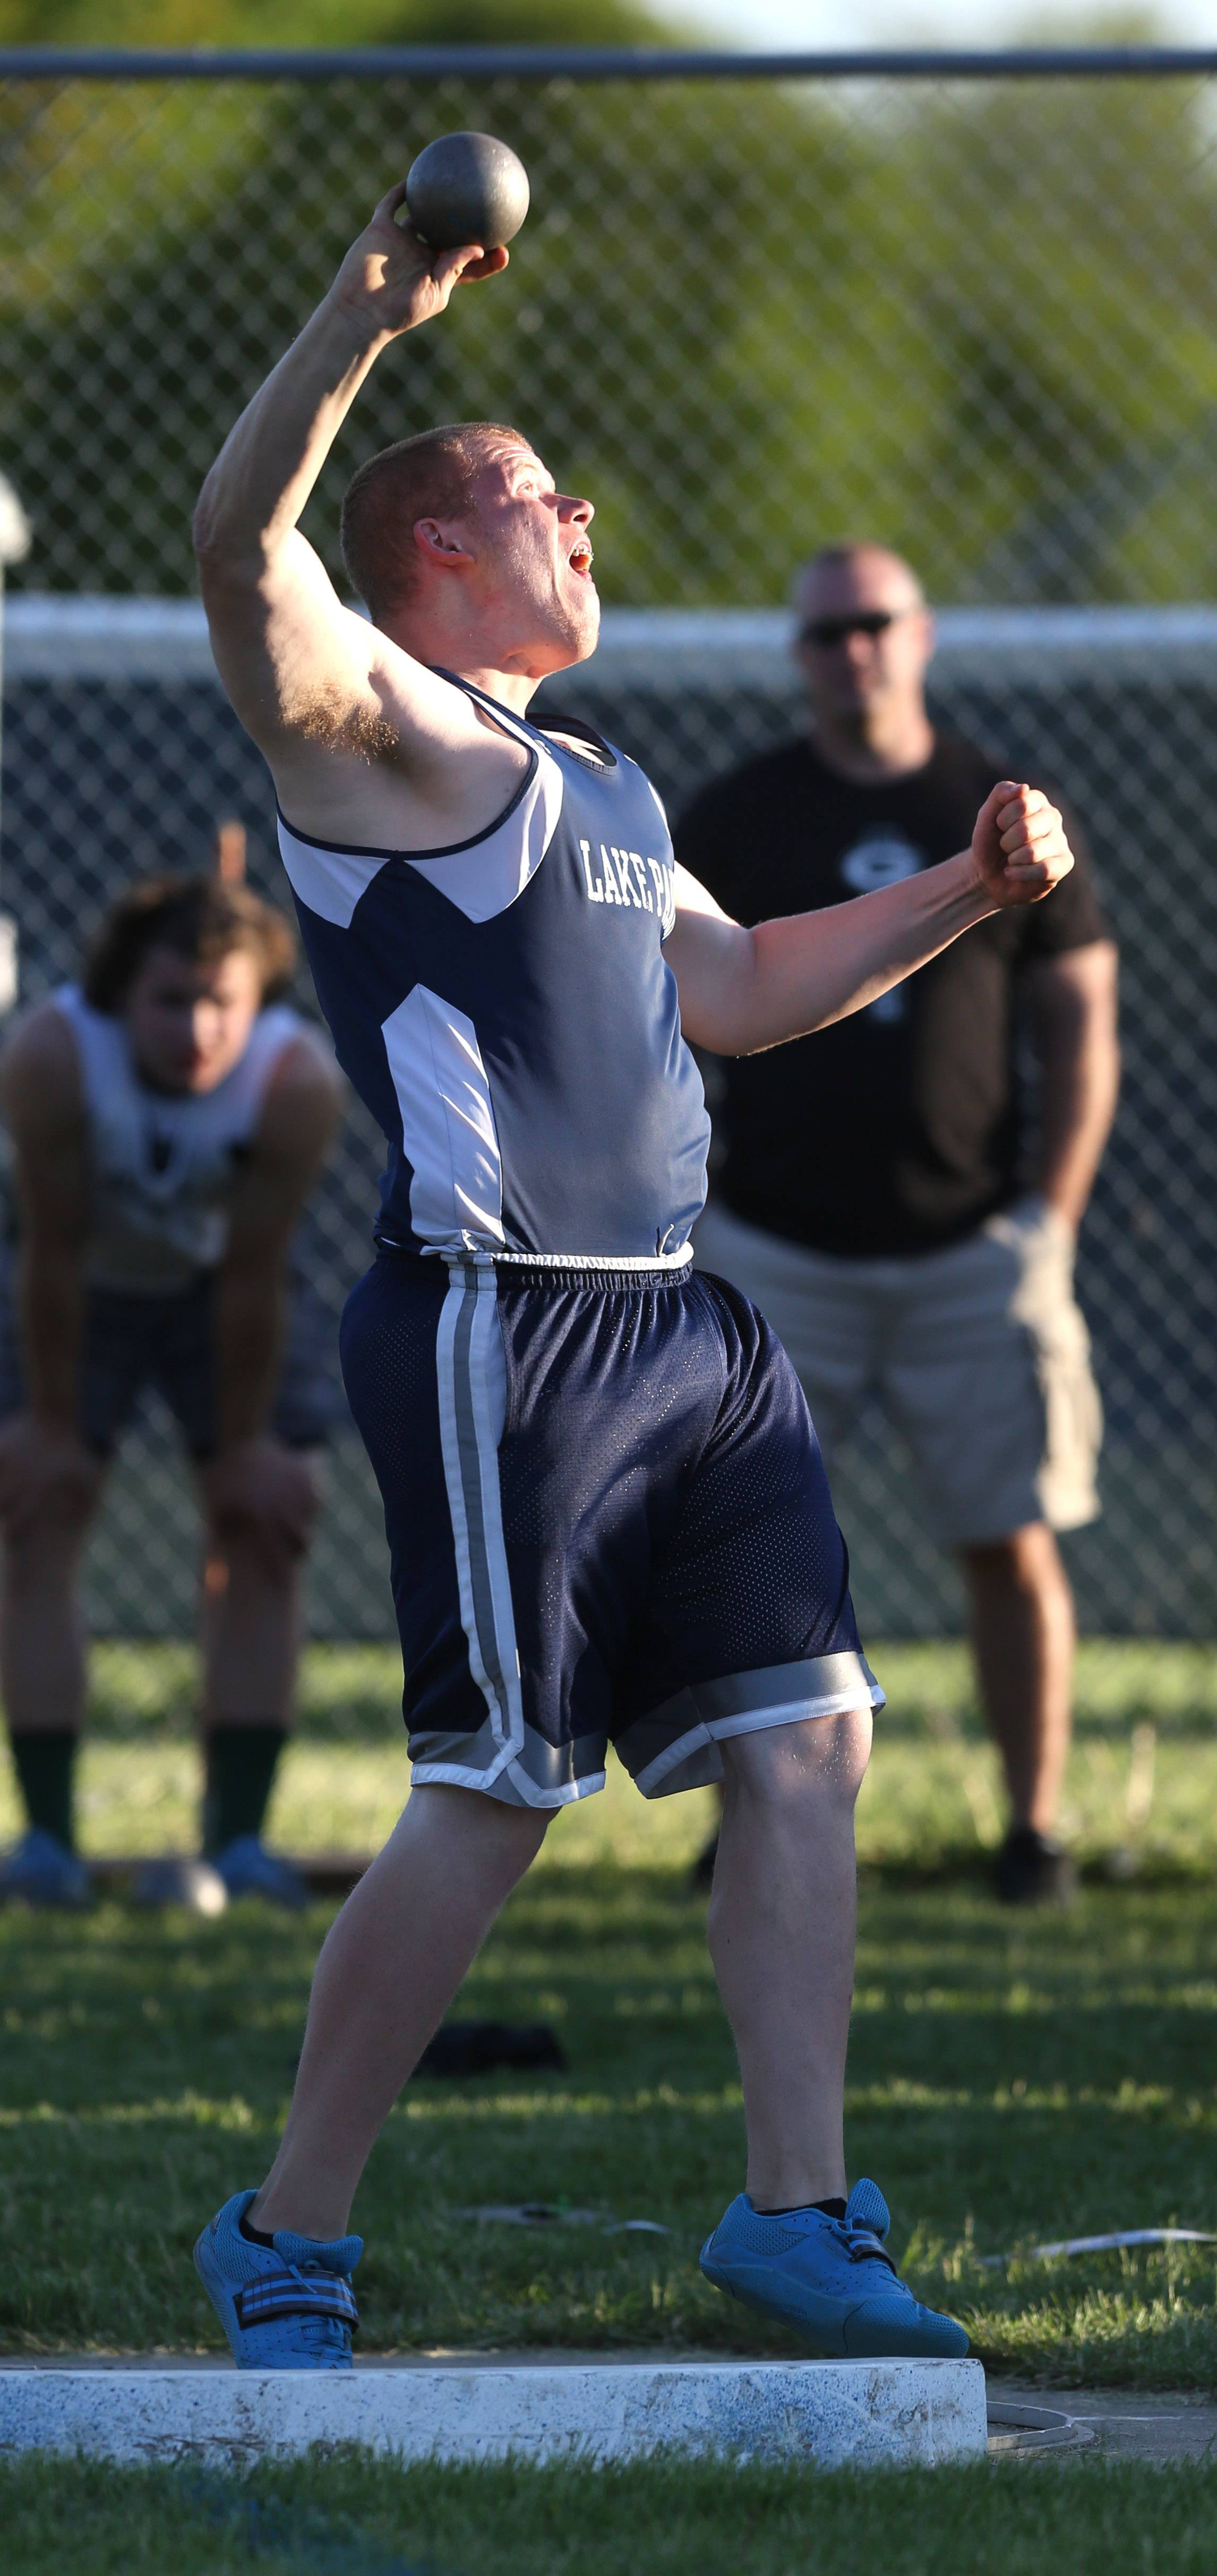 Lake Park's Mike Prestigiacomo finishes second in the shot put during the Lake Park Boys Track & Feld Sectional Championships.